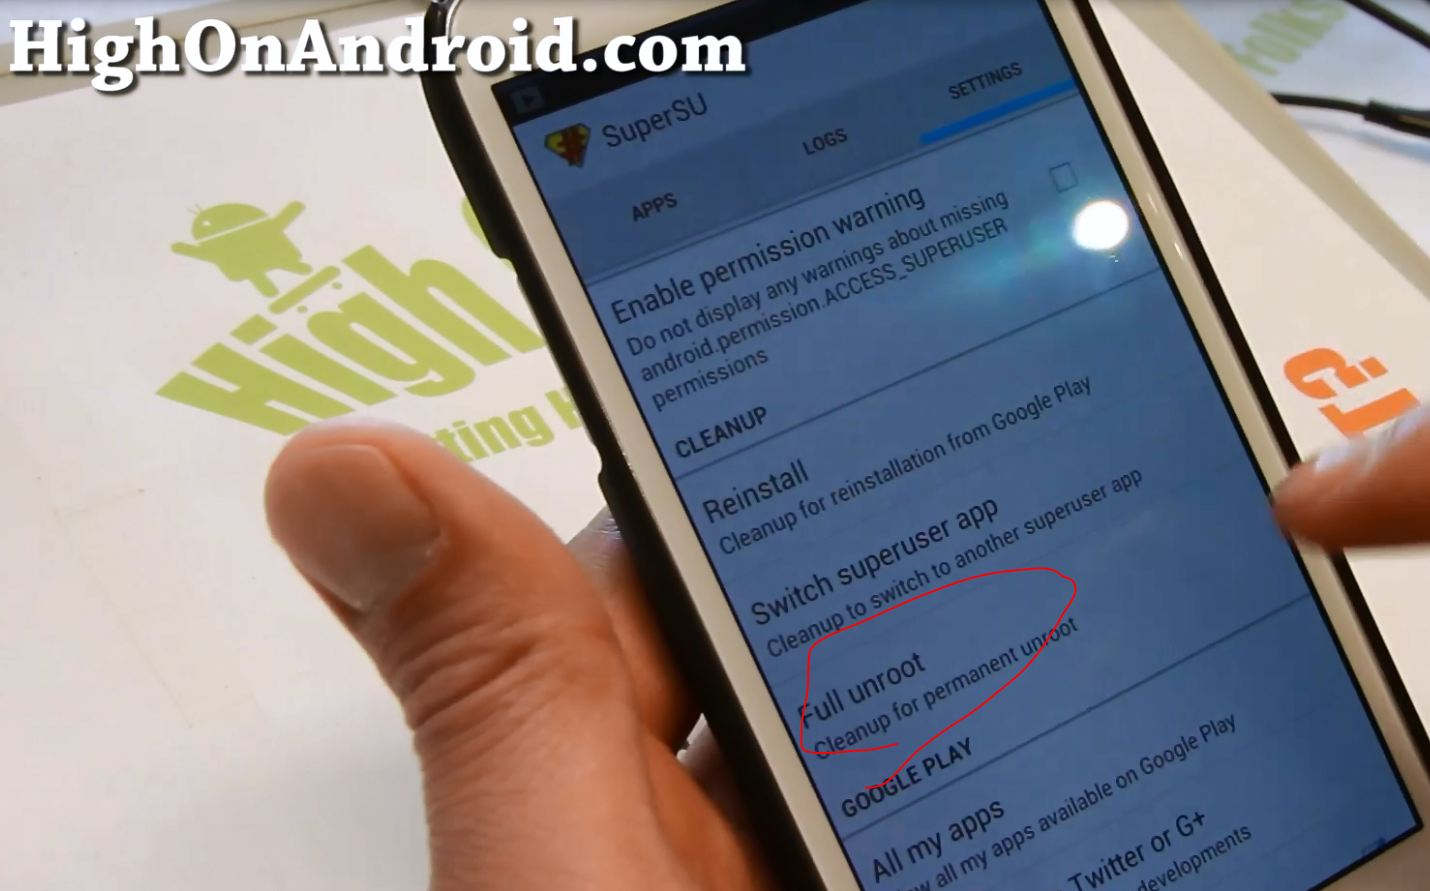 howto-unroot-any-rooted-android-smartphone-tablet-1click-universalmethod-2